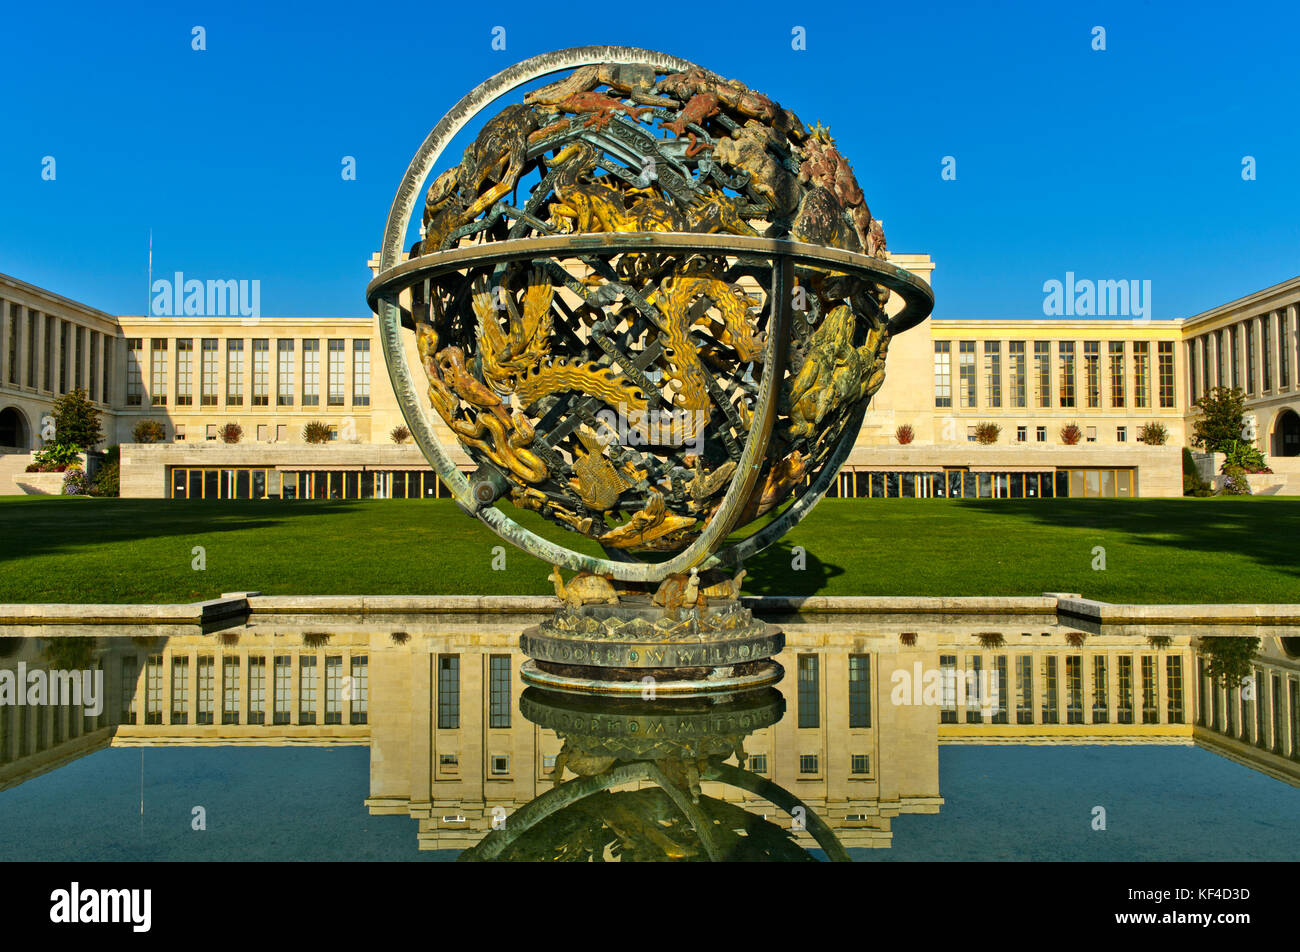 Celestial Sphere Woodrow Wilson Memorial, Palais des Nations, United Nations, Geneva, Switzerland - Stock Image